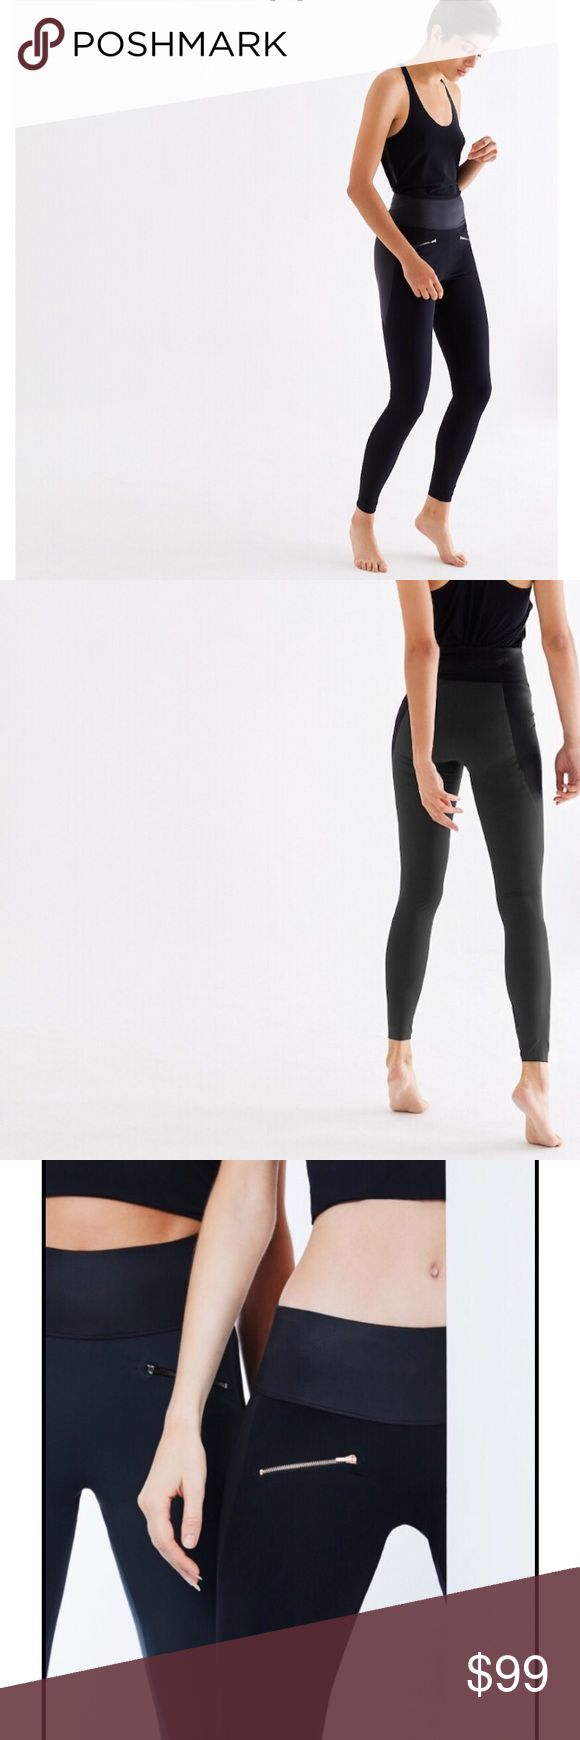 ADAY throw it higher leggings New without tag.Size Small.No flaws MATERIAL QUALITIES UV protection Quick drying Stretch Pilling-resistant Sweat wicking FITTING True to size, with a sculpting fit. High waisted. CARE INSTRUCTIONS Cold wash, line dry. Do not use bleach, fabric softener or dry clean.  FABRIC Body: 59% Nylon, 41% Elastane  Detail: 79% Polyester, 21% Elastane This is ADAY ADAY Pants Leggings